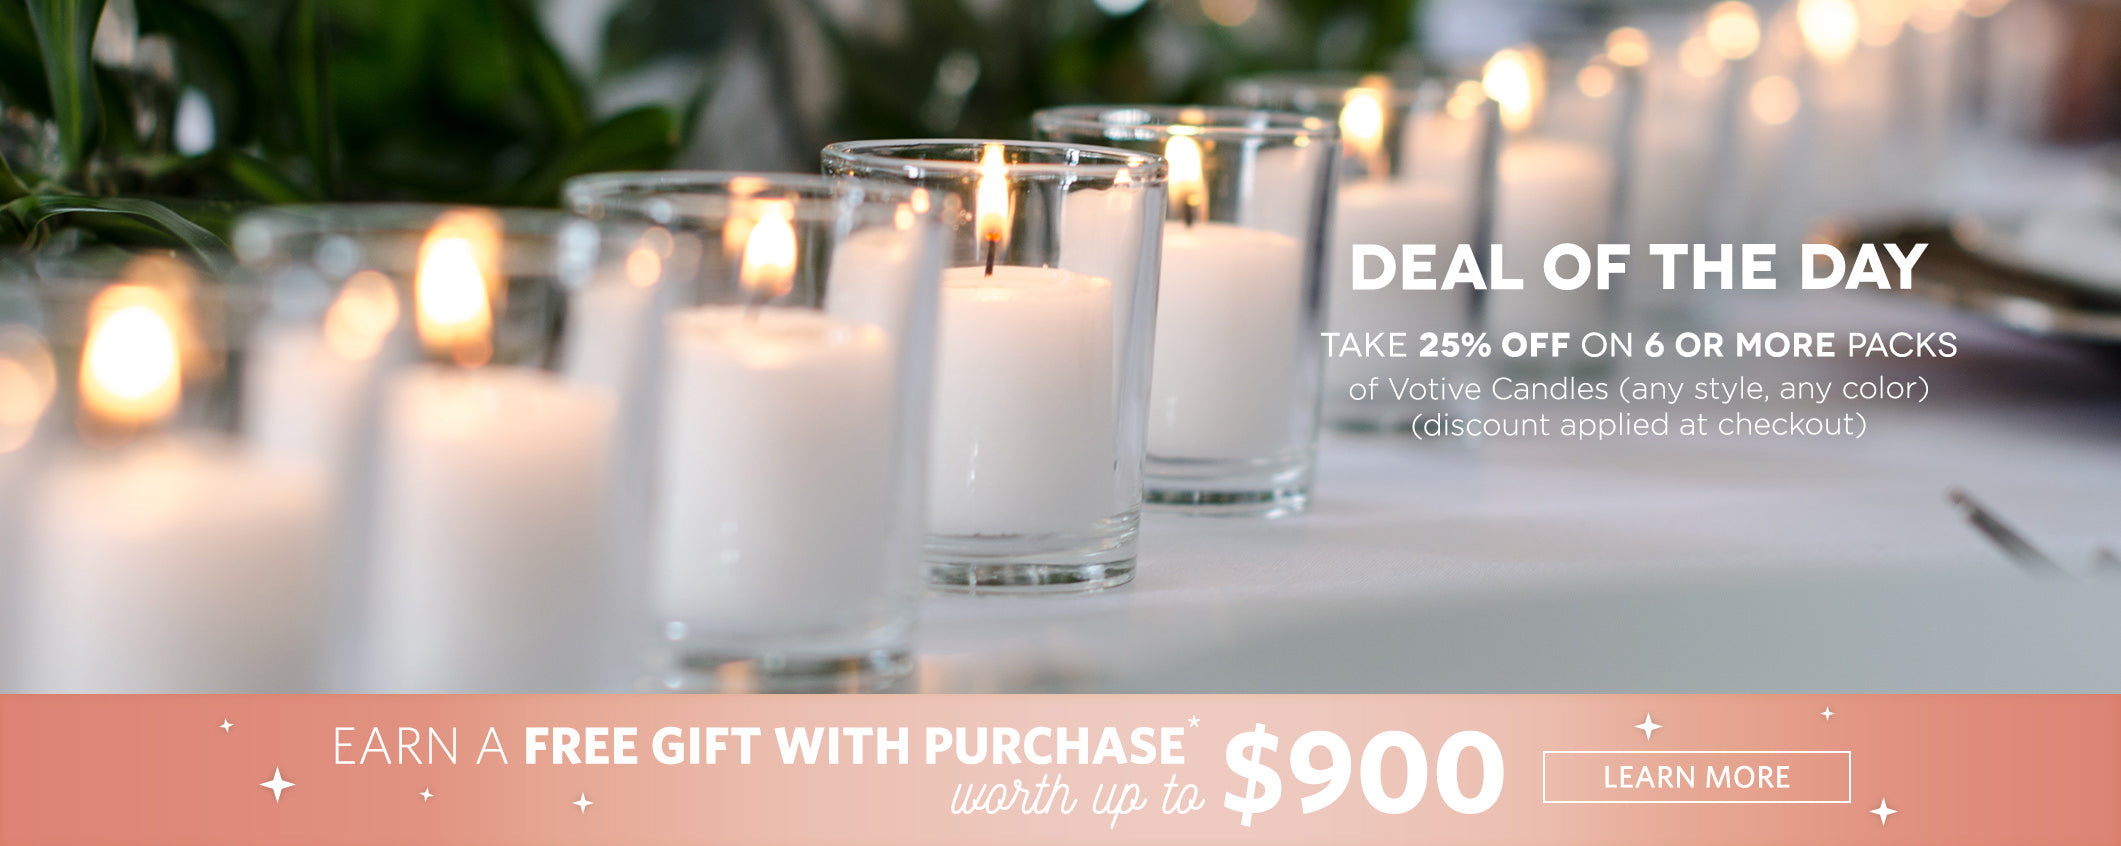 Deal of the Day: take 25% off on 6 or more packs of votive candles (any style, any color) (discount applied at checkout). Earn a Free gift with purchase* worth up to $900. Learn more.